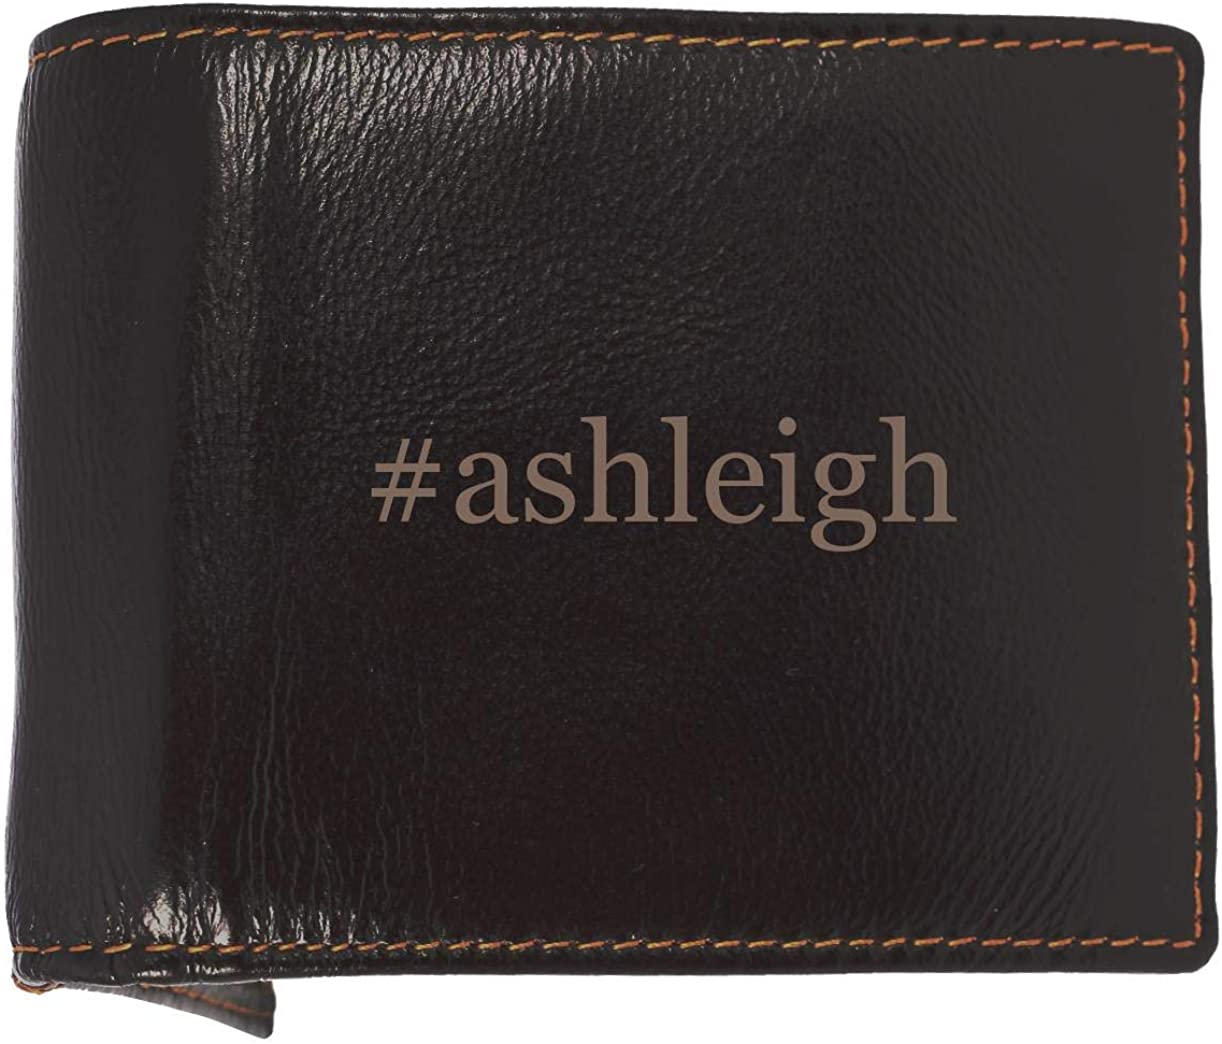 #ashleigh - Soft Hashtag Cowhide Genuine Engraved Bifold Leather Wallet